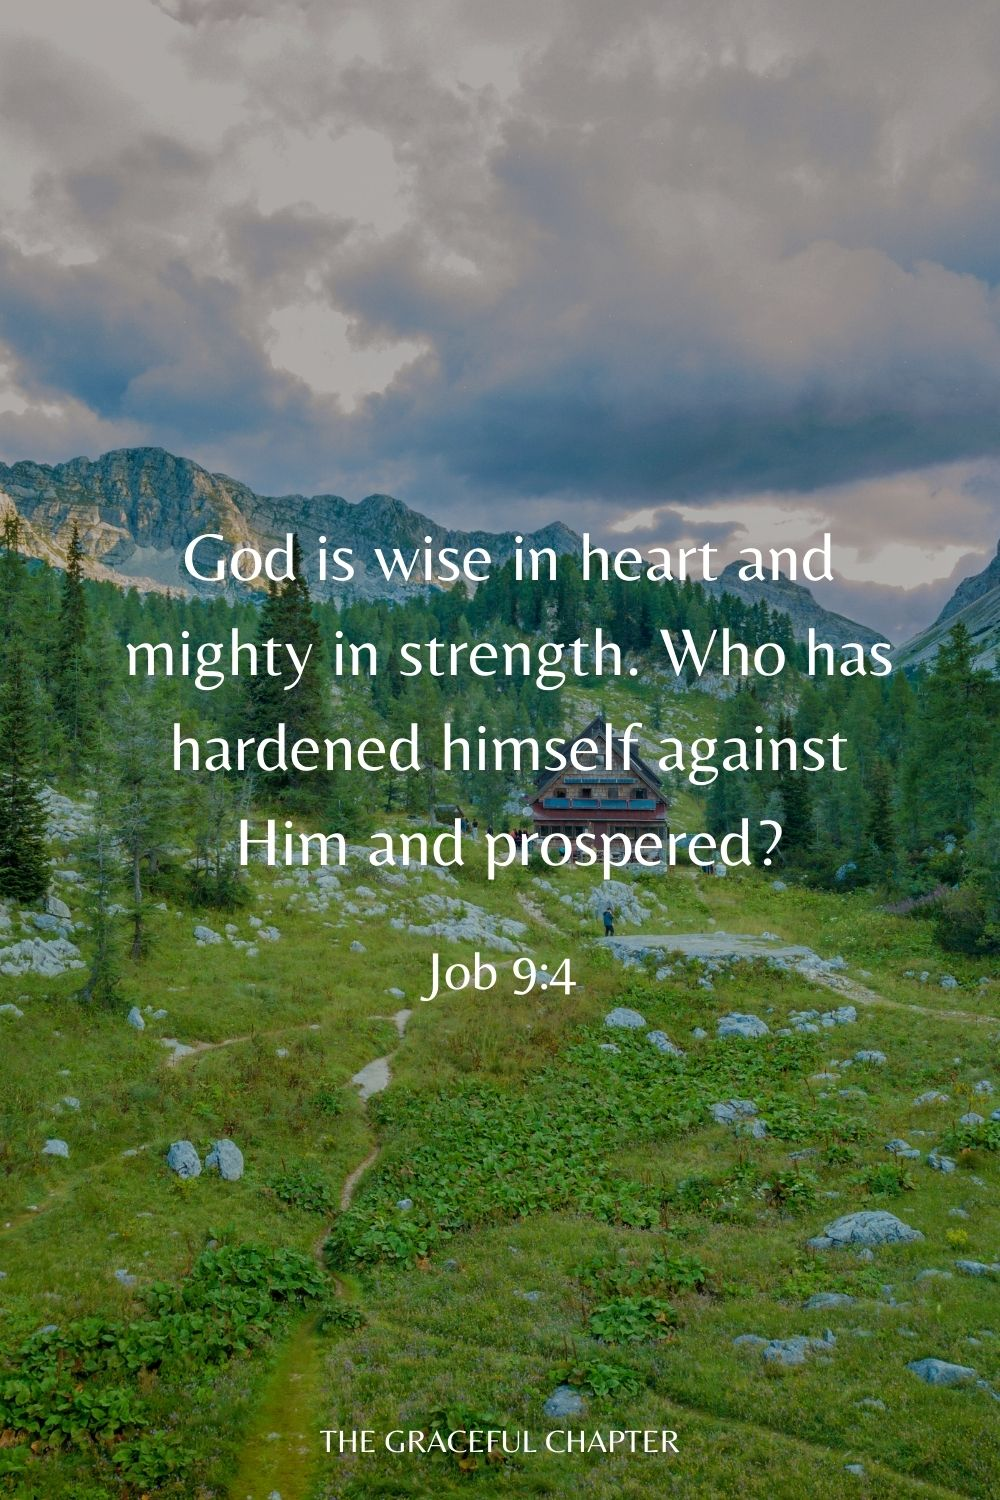 God is wise in heart and mighty in strength. Who has hardened himself against Him and prospered? Job 9:4